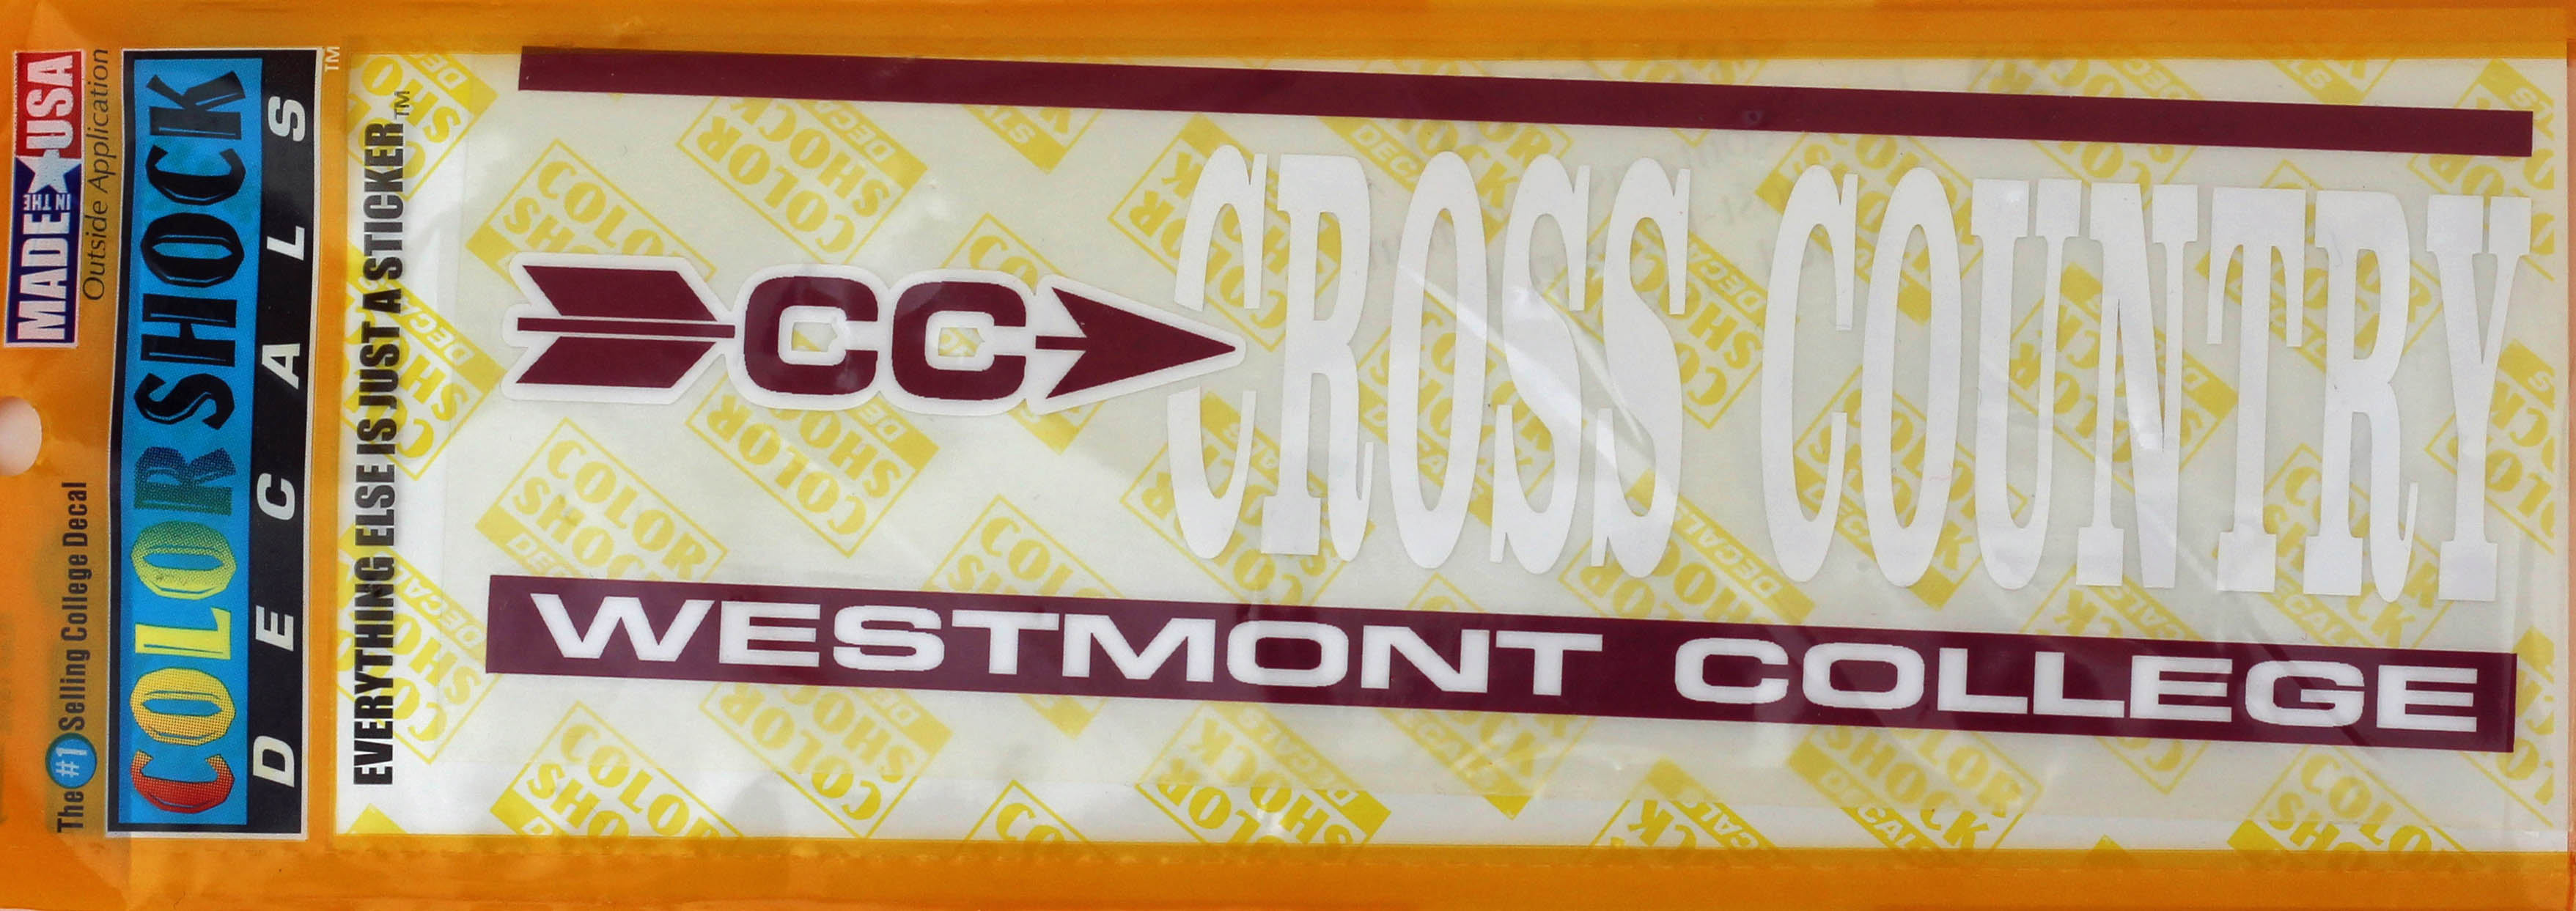 Image for the Color Shock Cross Country Decal product